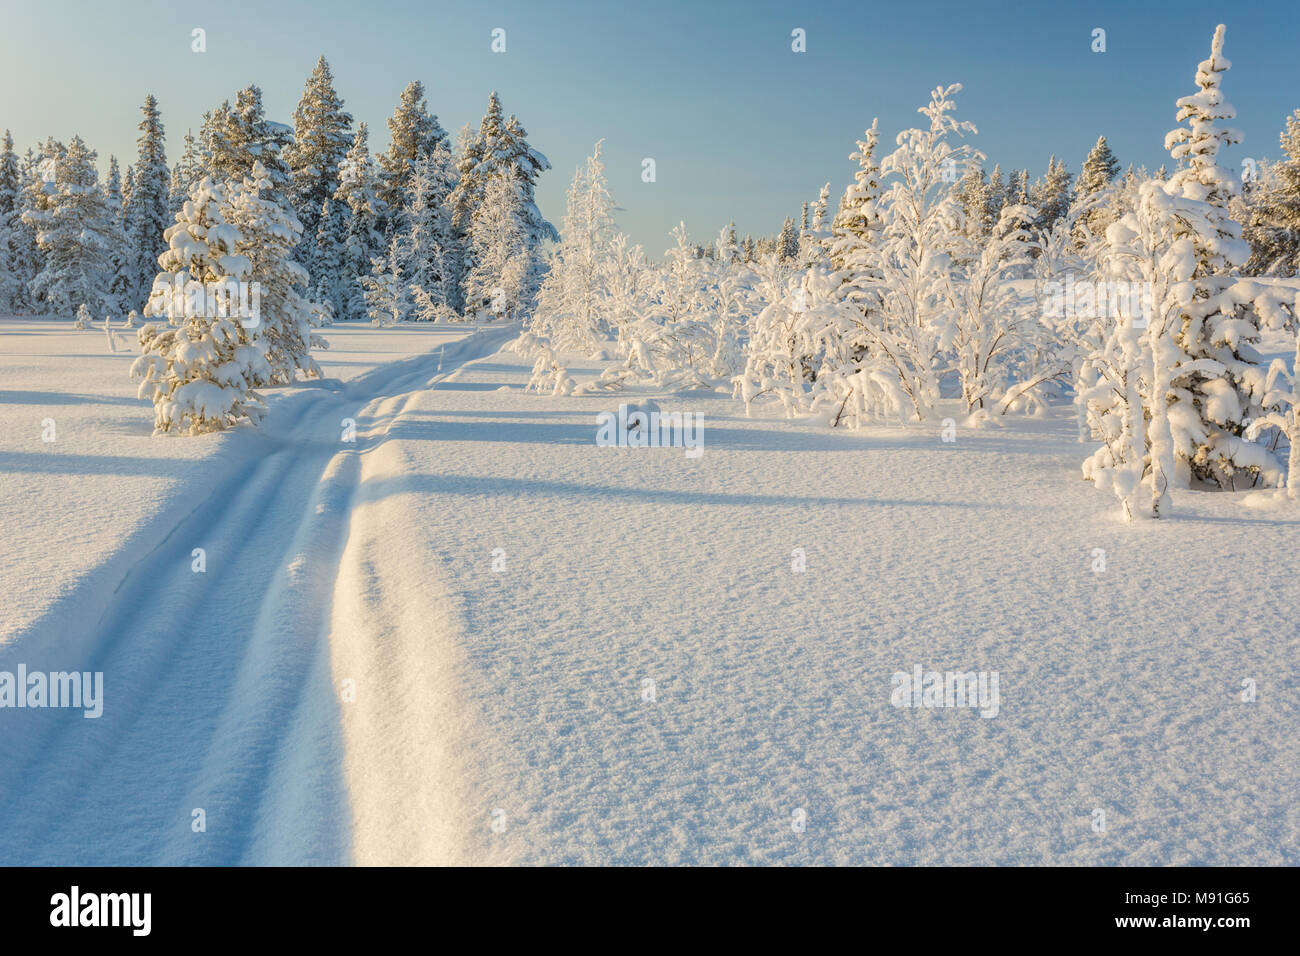 Snowmobile track in the snow with snowy spruce trees and blue skye and warm light, Gällivare, Swedish Lapland, Sweden Stock Photo